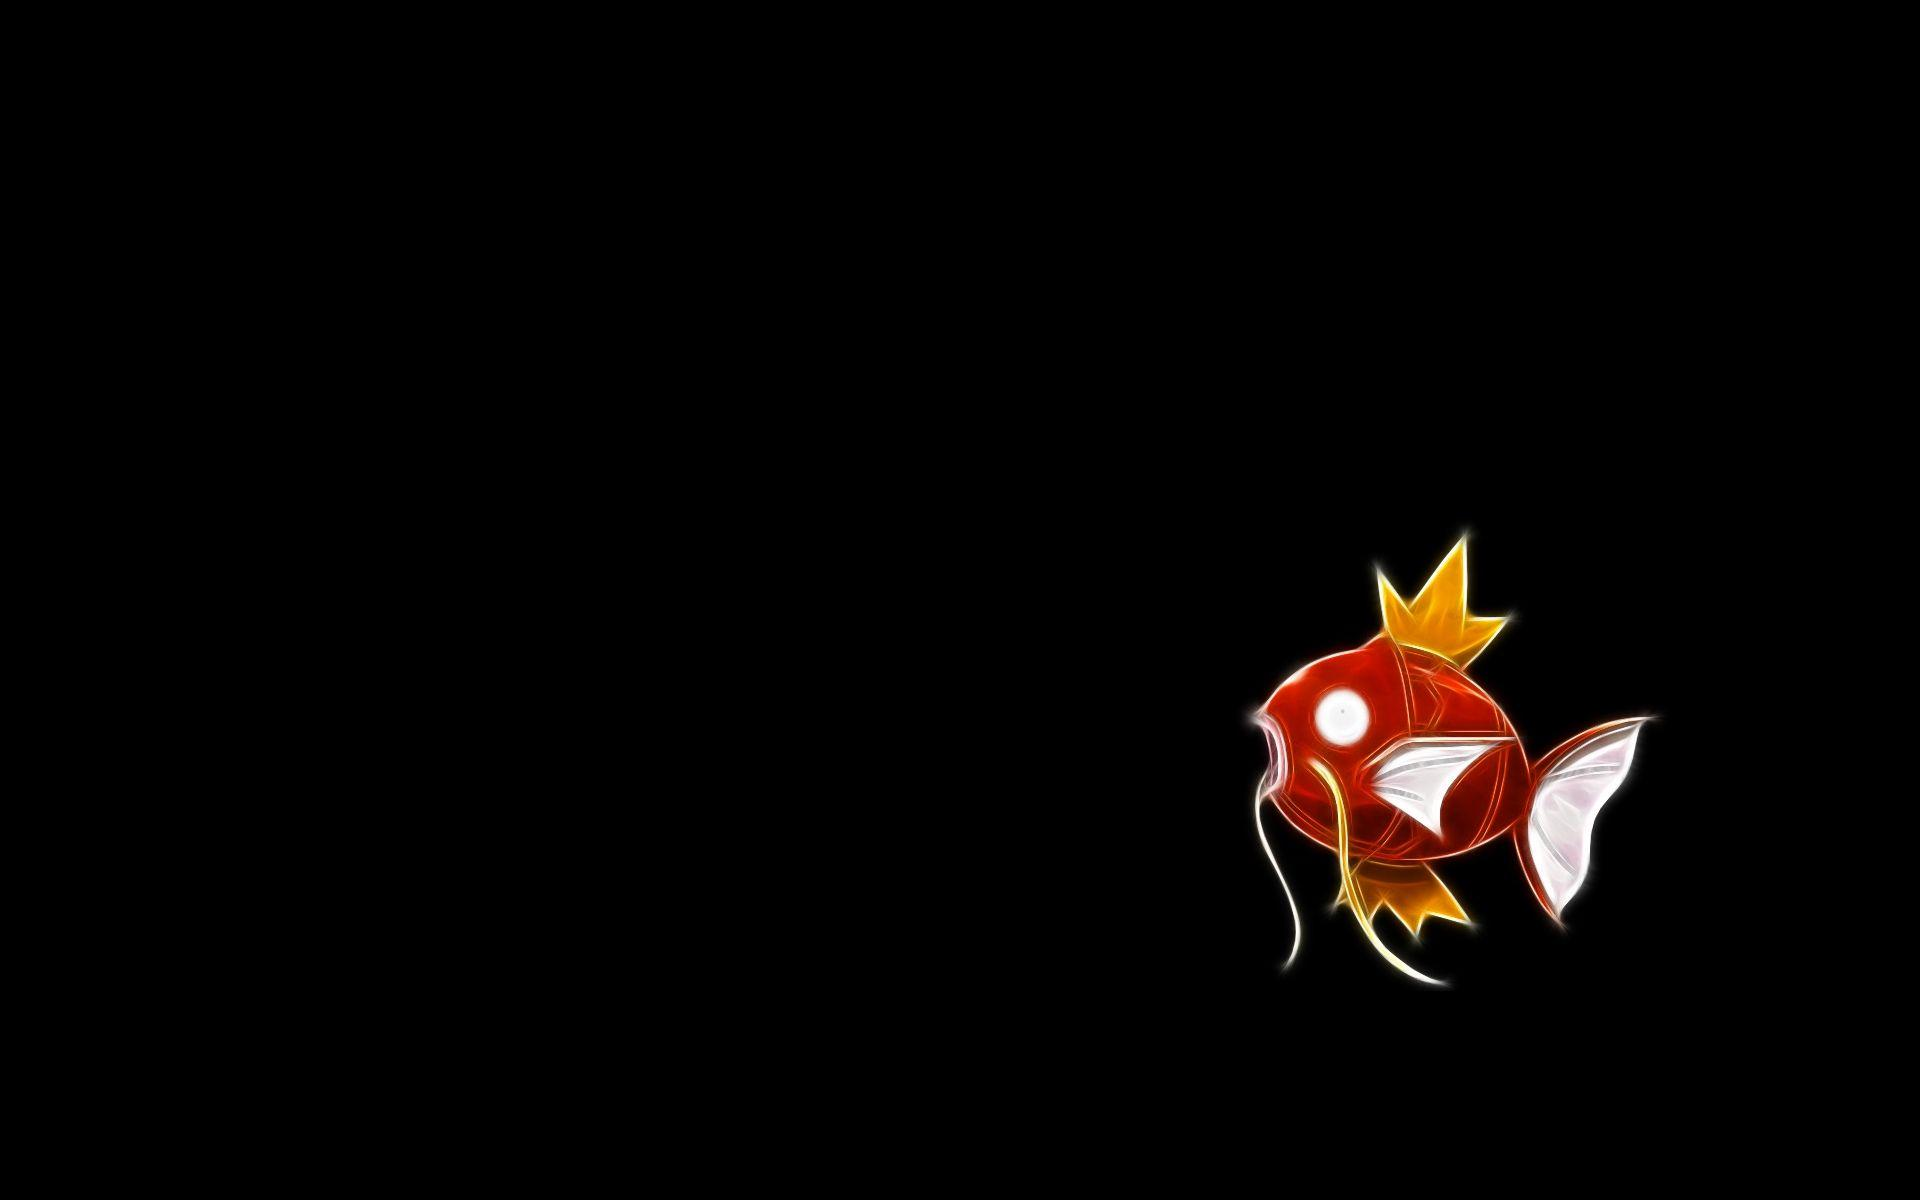 pokemon magikarp black backgrounds 1920x1200 wallpapers High Quality